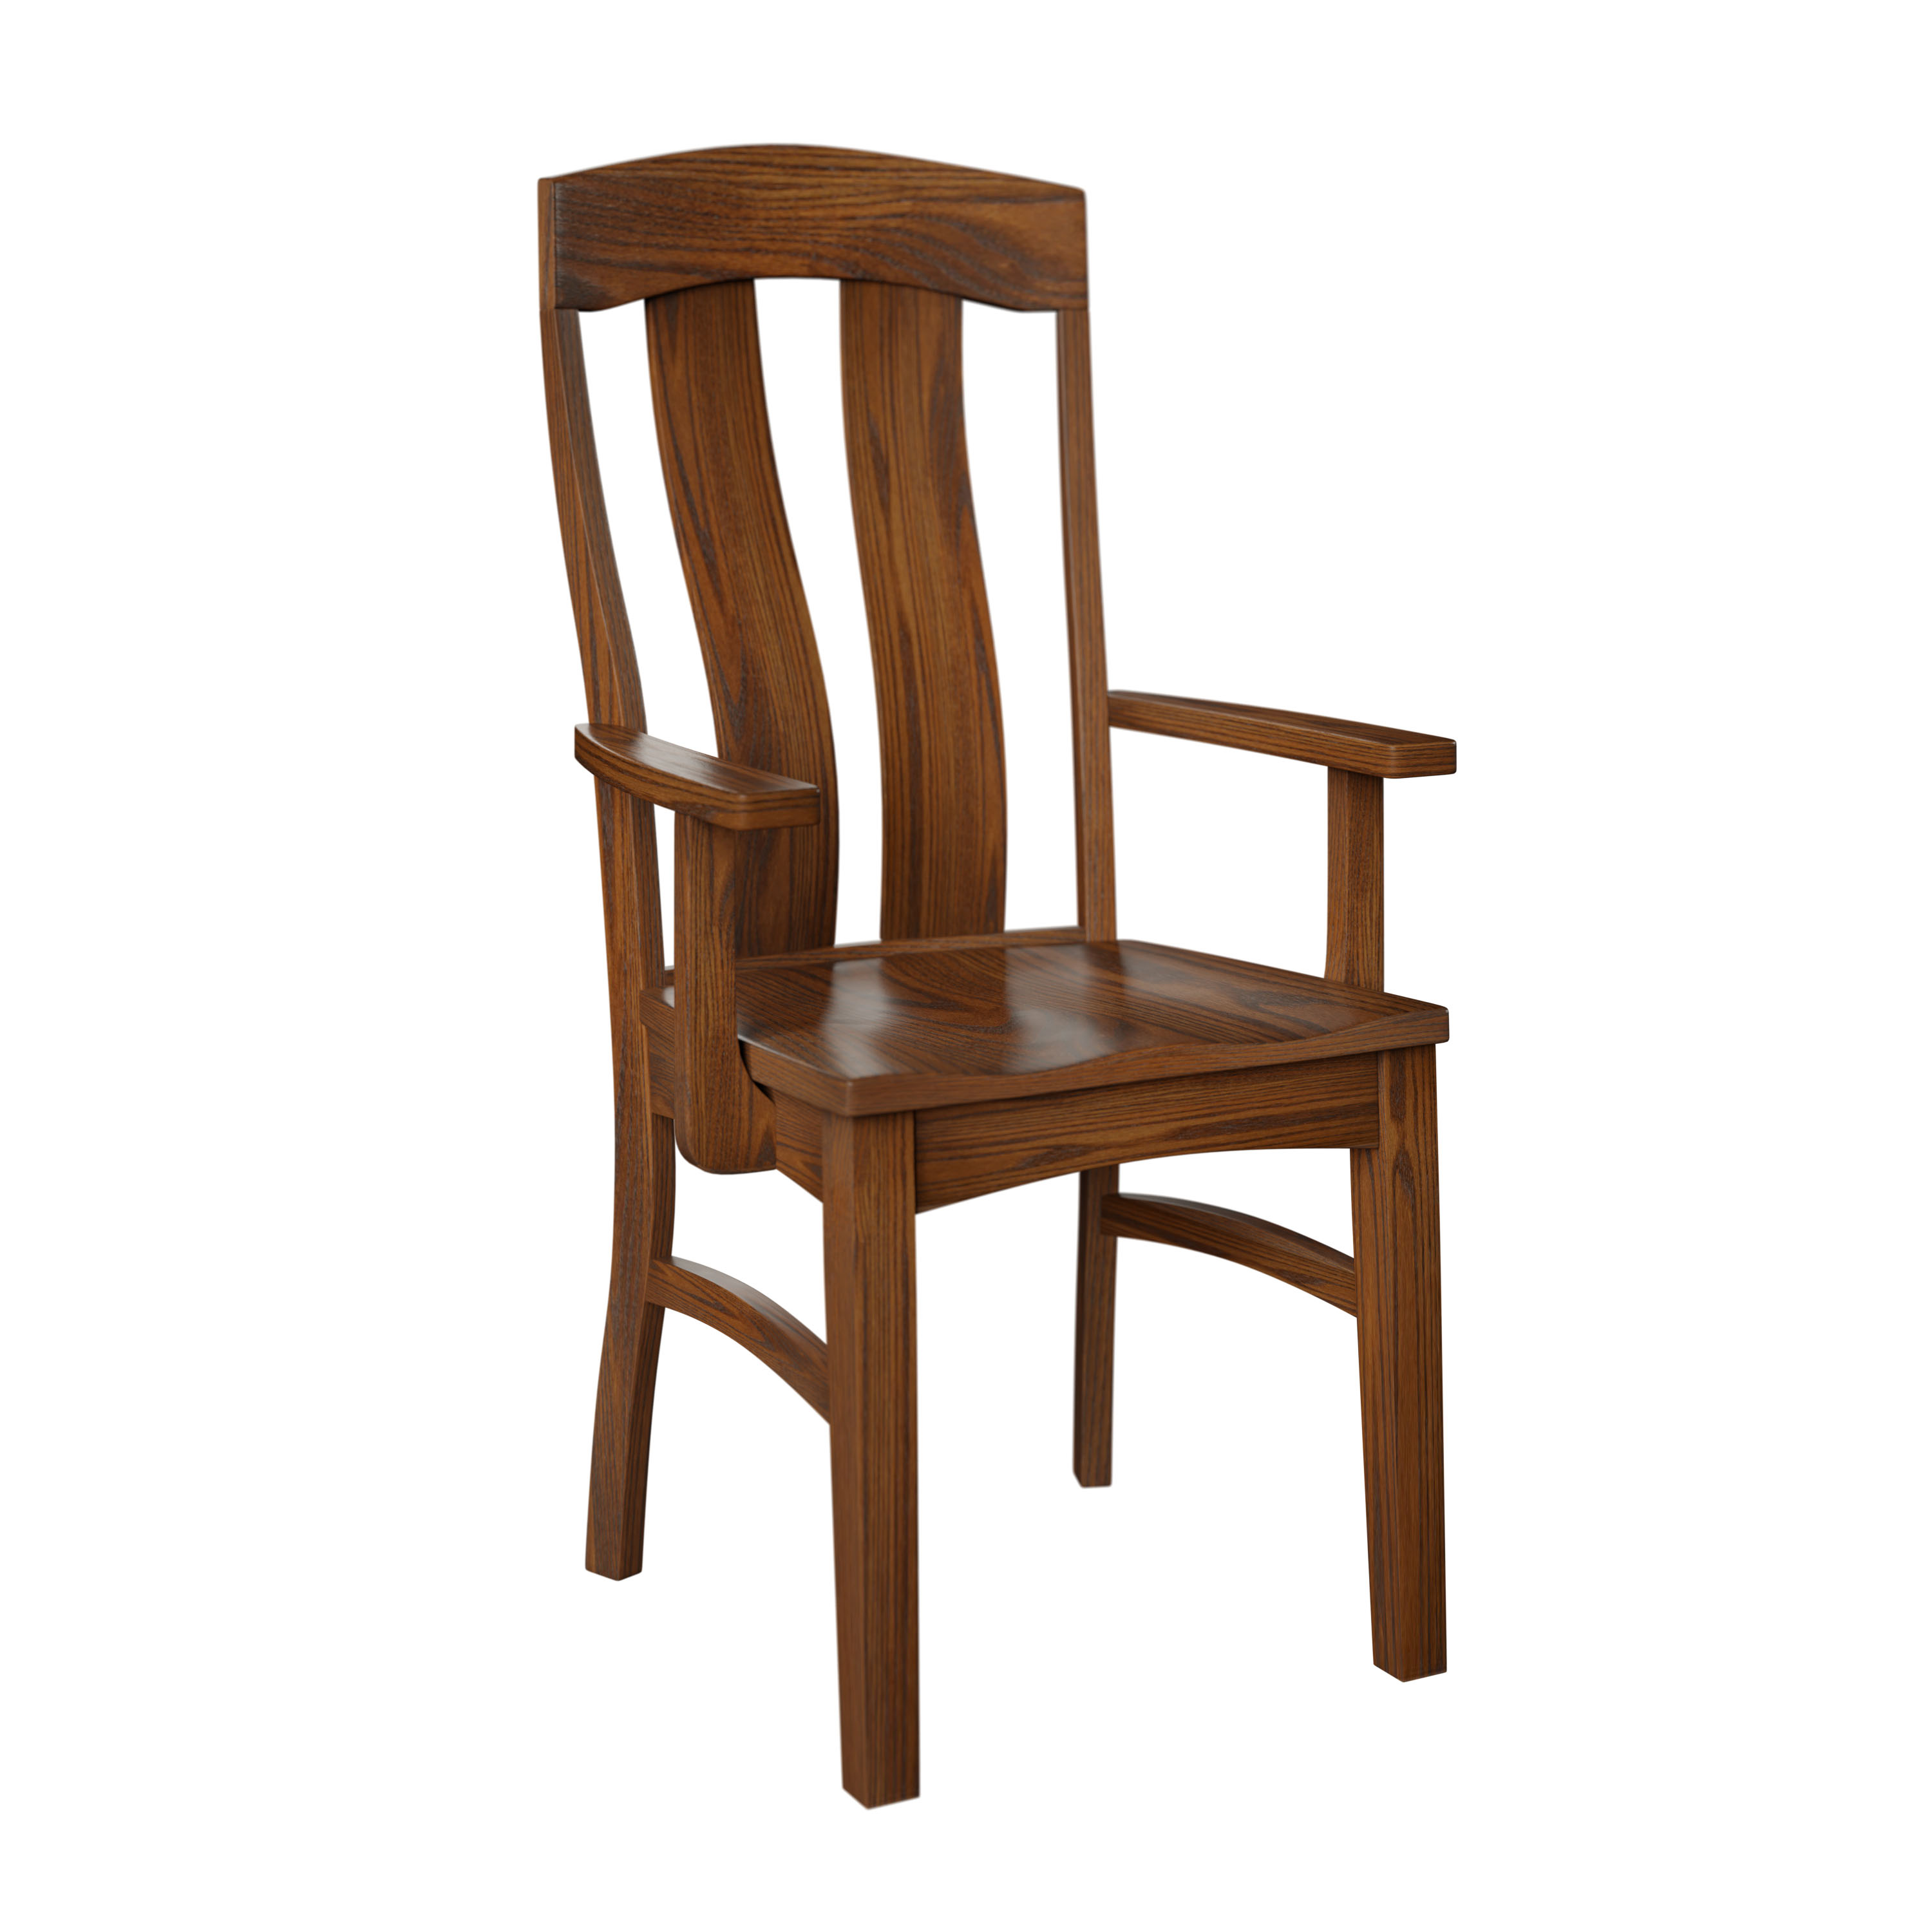 Wadena Dining Chair Product